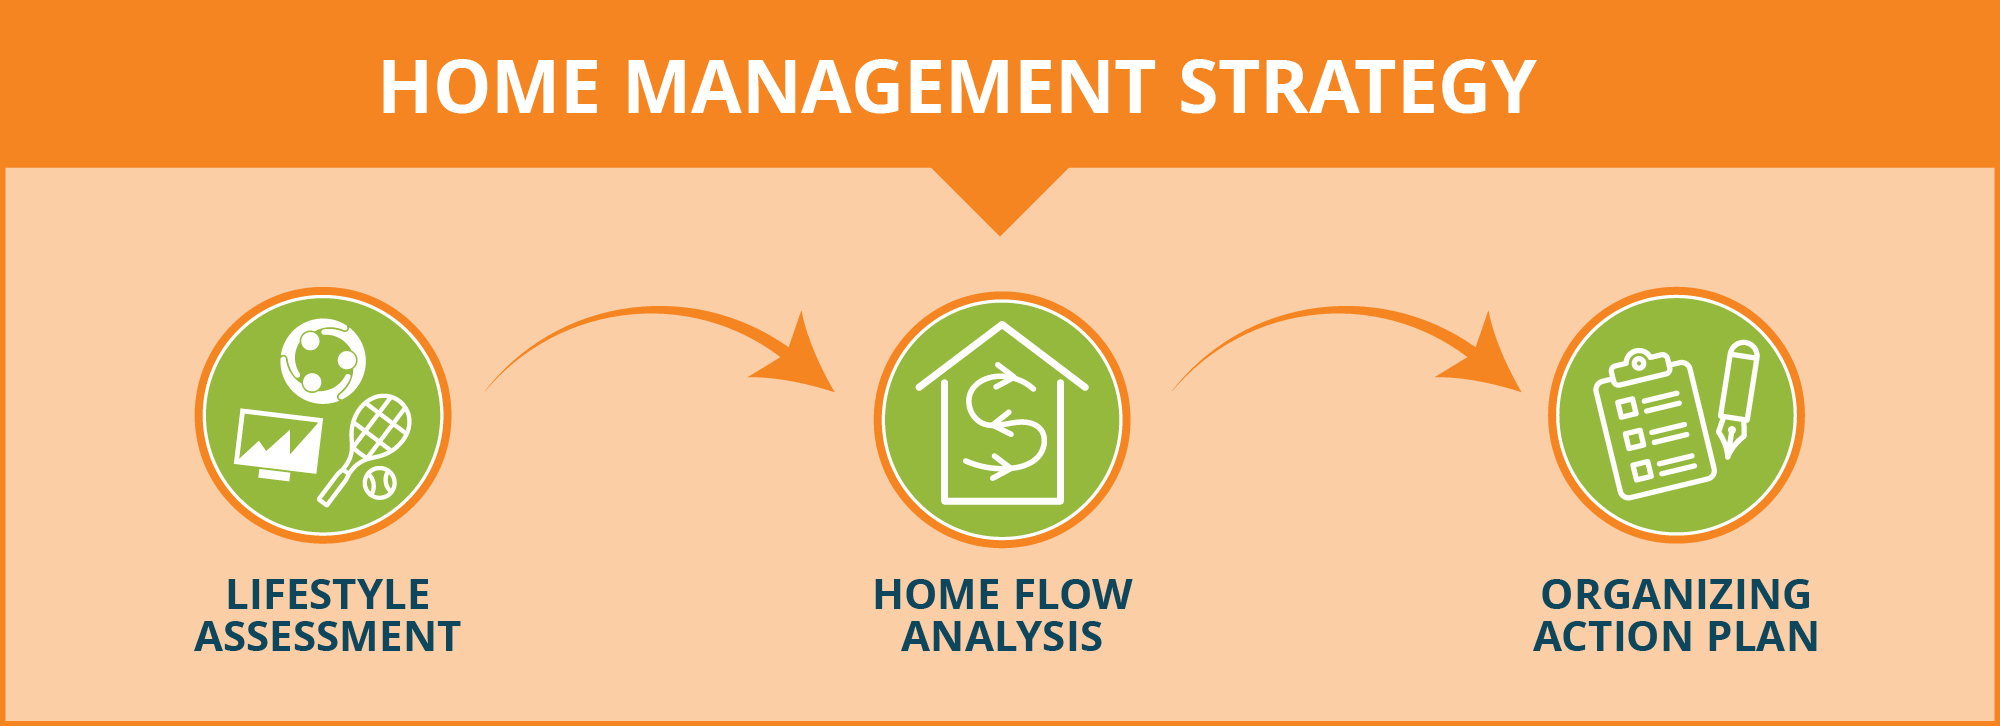 Life Management Strategy: Home Flow Analysis, Lifestyle Assessment, Organizing Action Plan